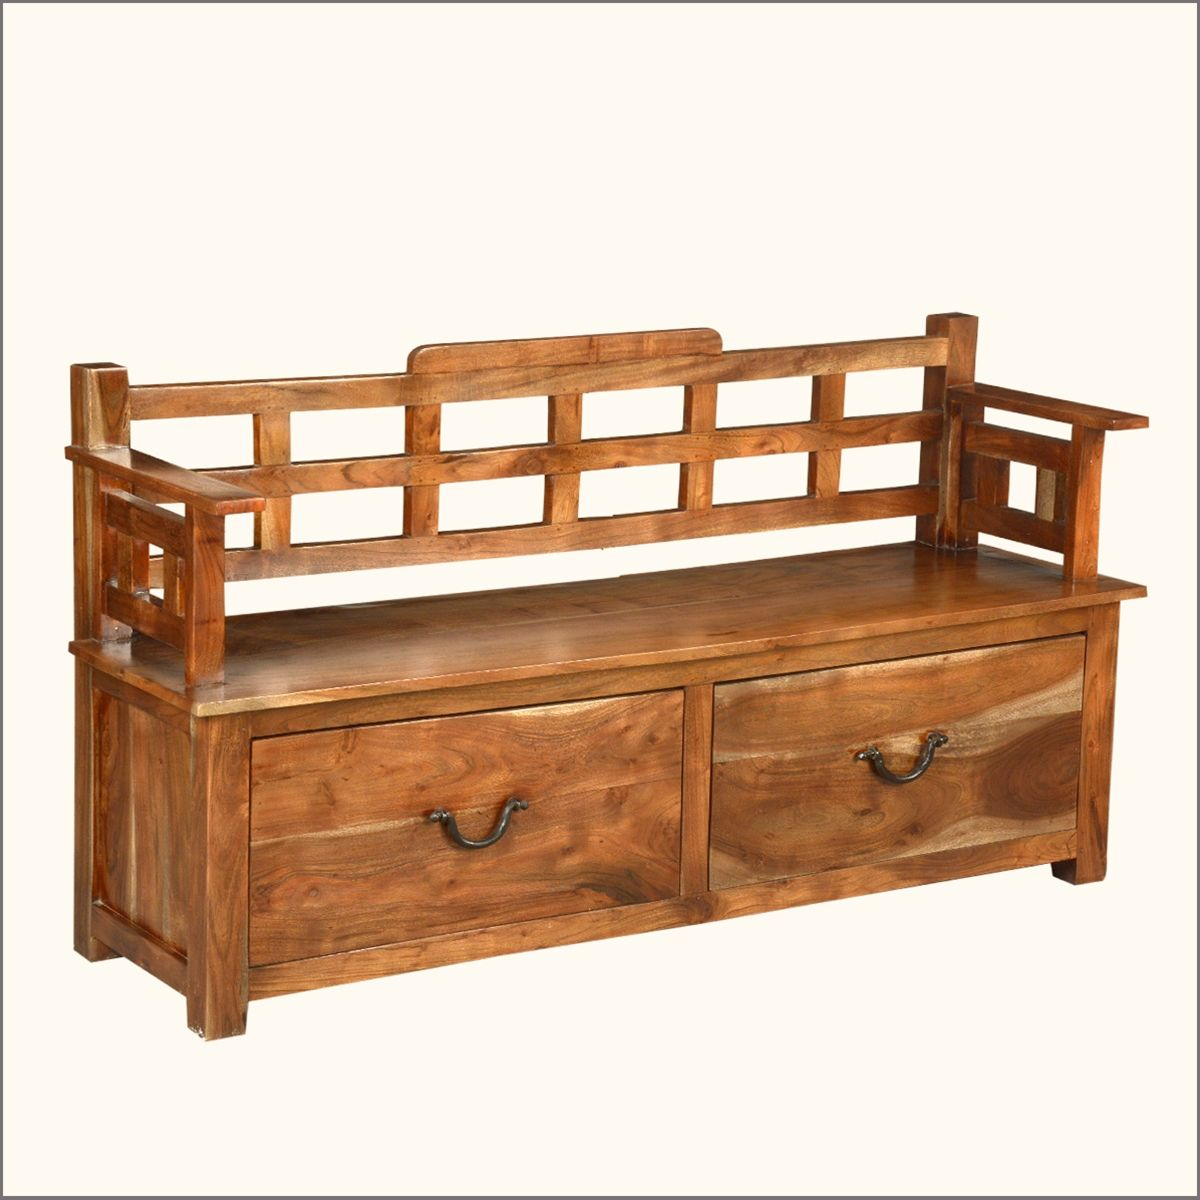 Handmade Cherry Finish Hardwood Storage Bench, Strong And Sturdy Rustic  Style With Two Large Storage Drawers And A Spacious Bench Style Top With  Side Arm ...